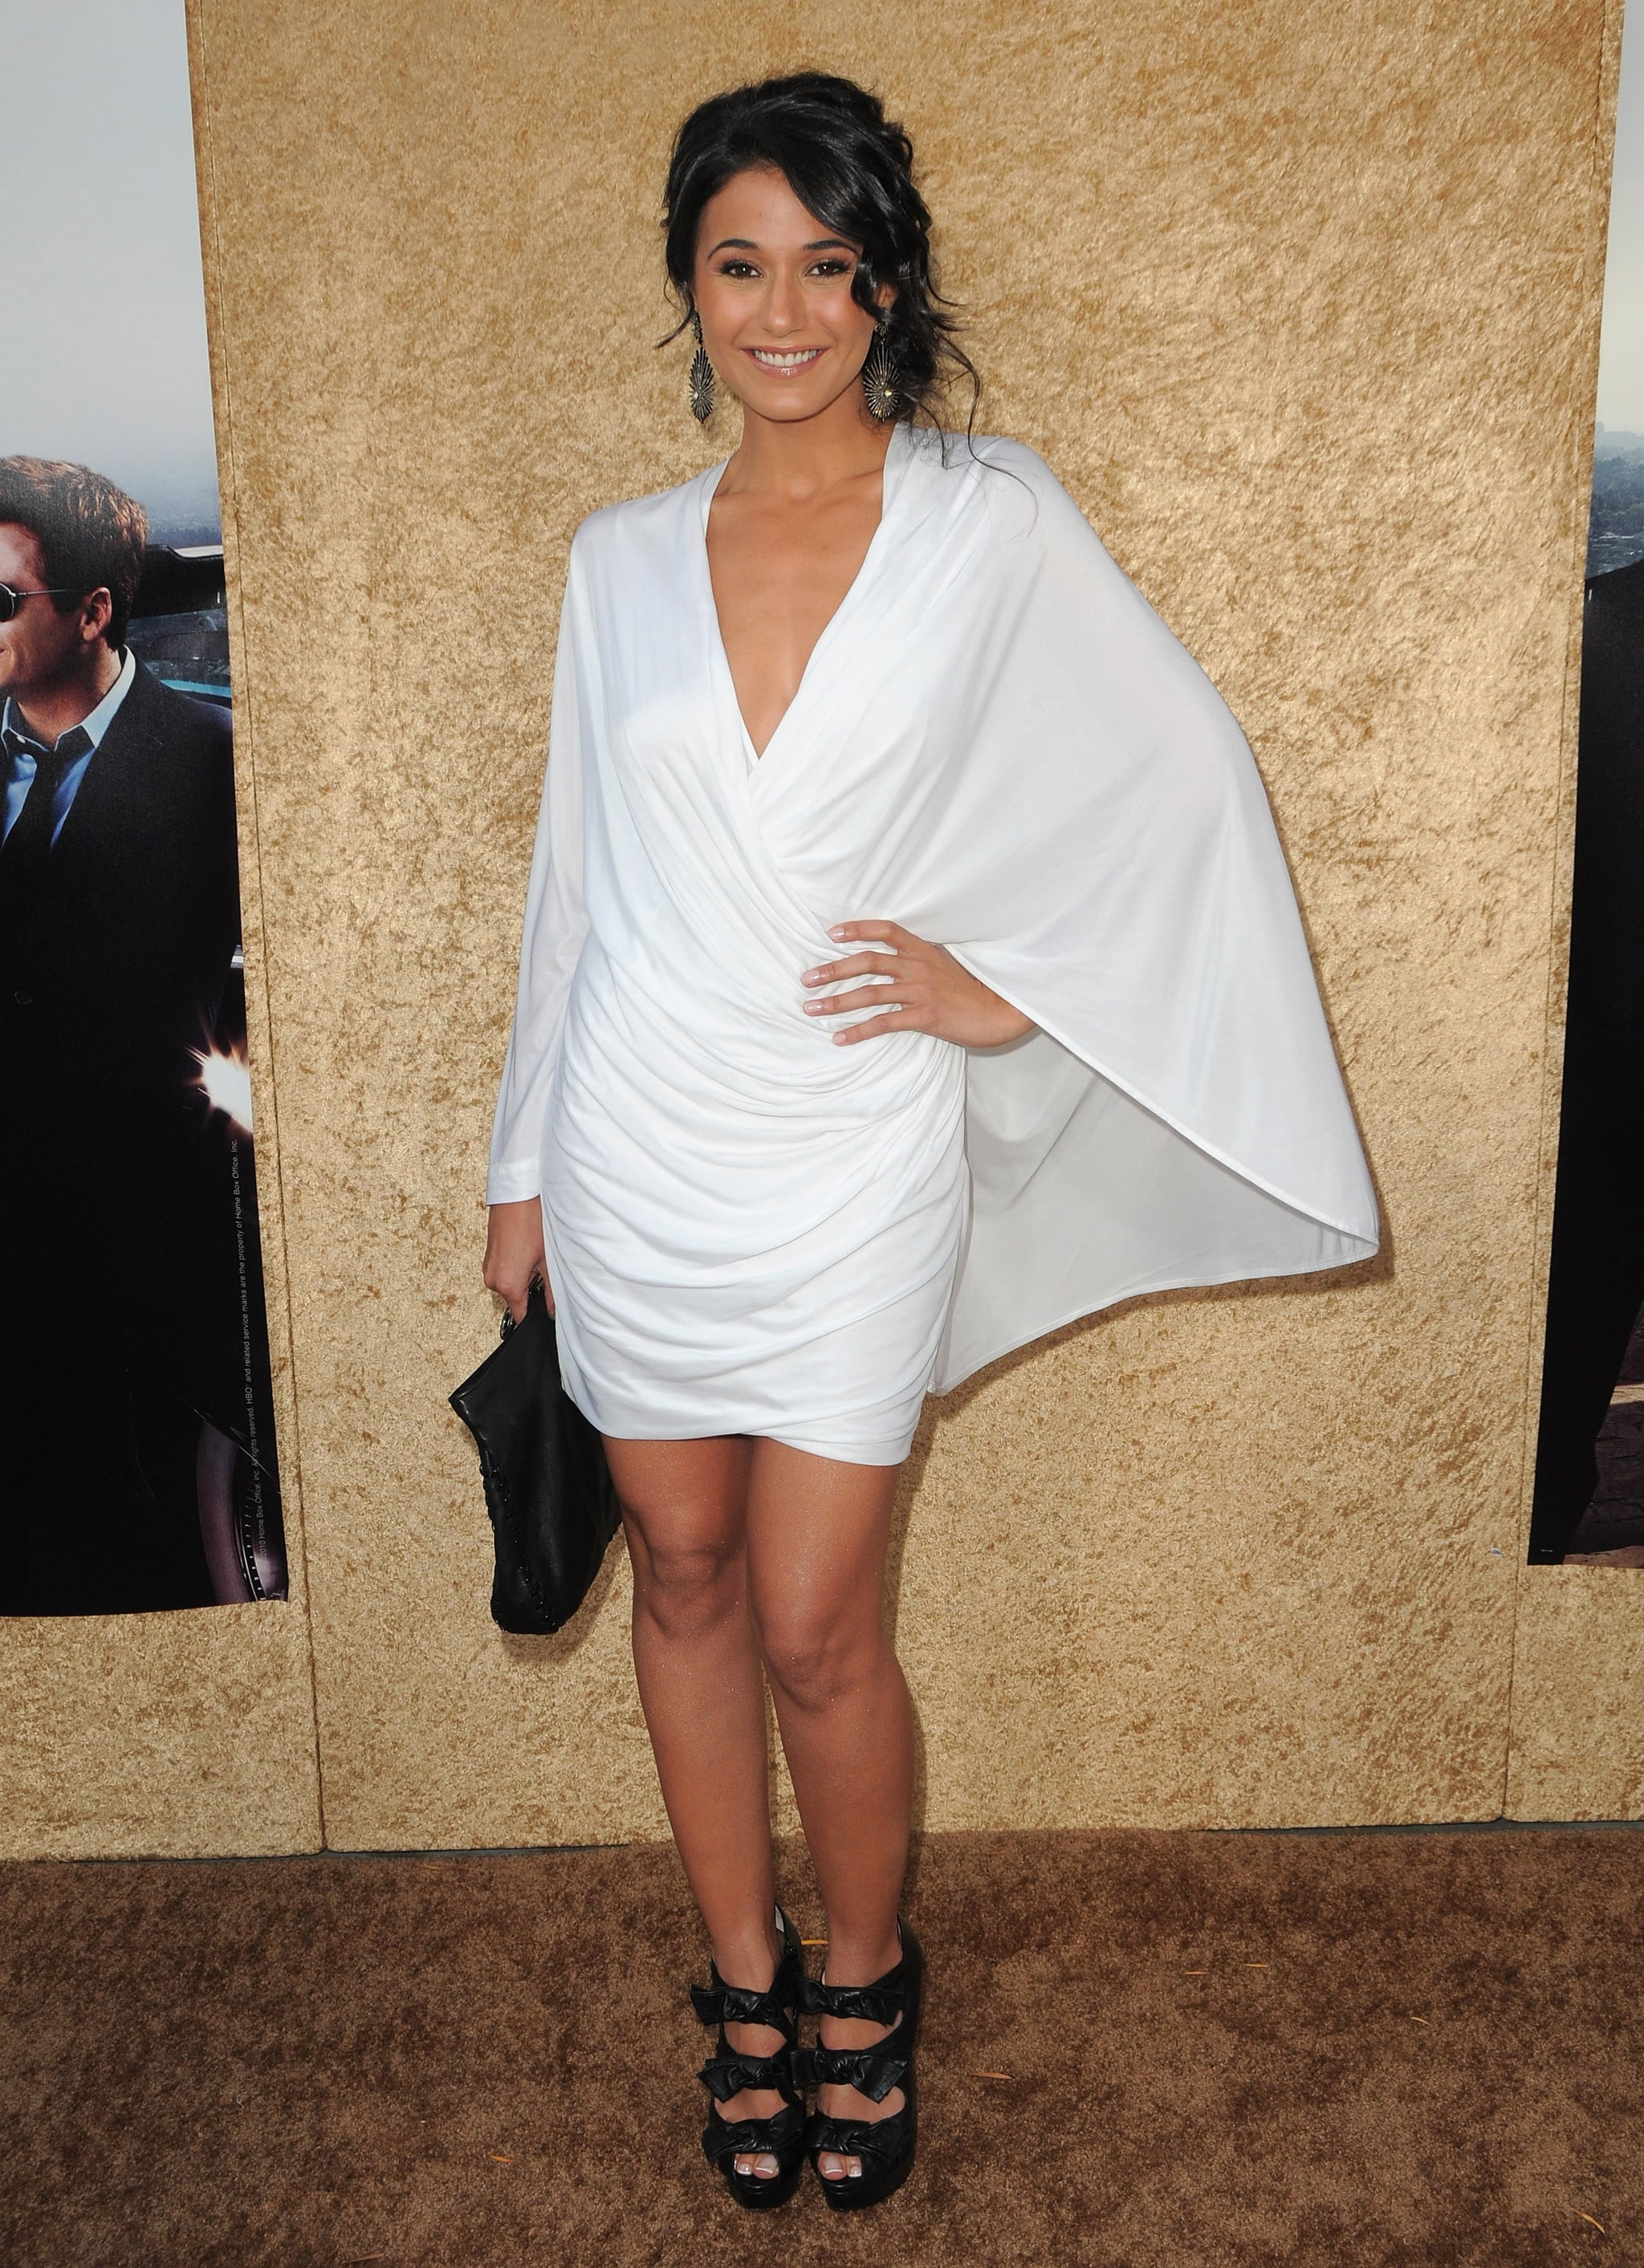 Adrian Grenier Wife >> Pictures of Jeremy Piven, Kevin Connolly, Maria Menounos, Adrian Grenier, And Mark Wahlberg at ...